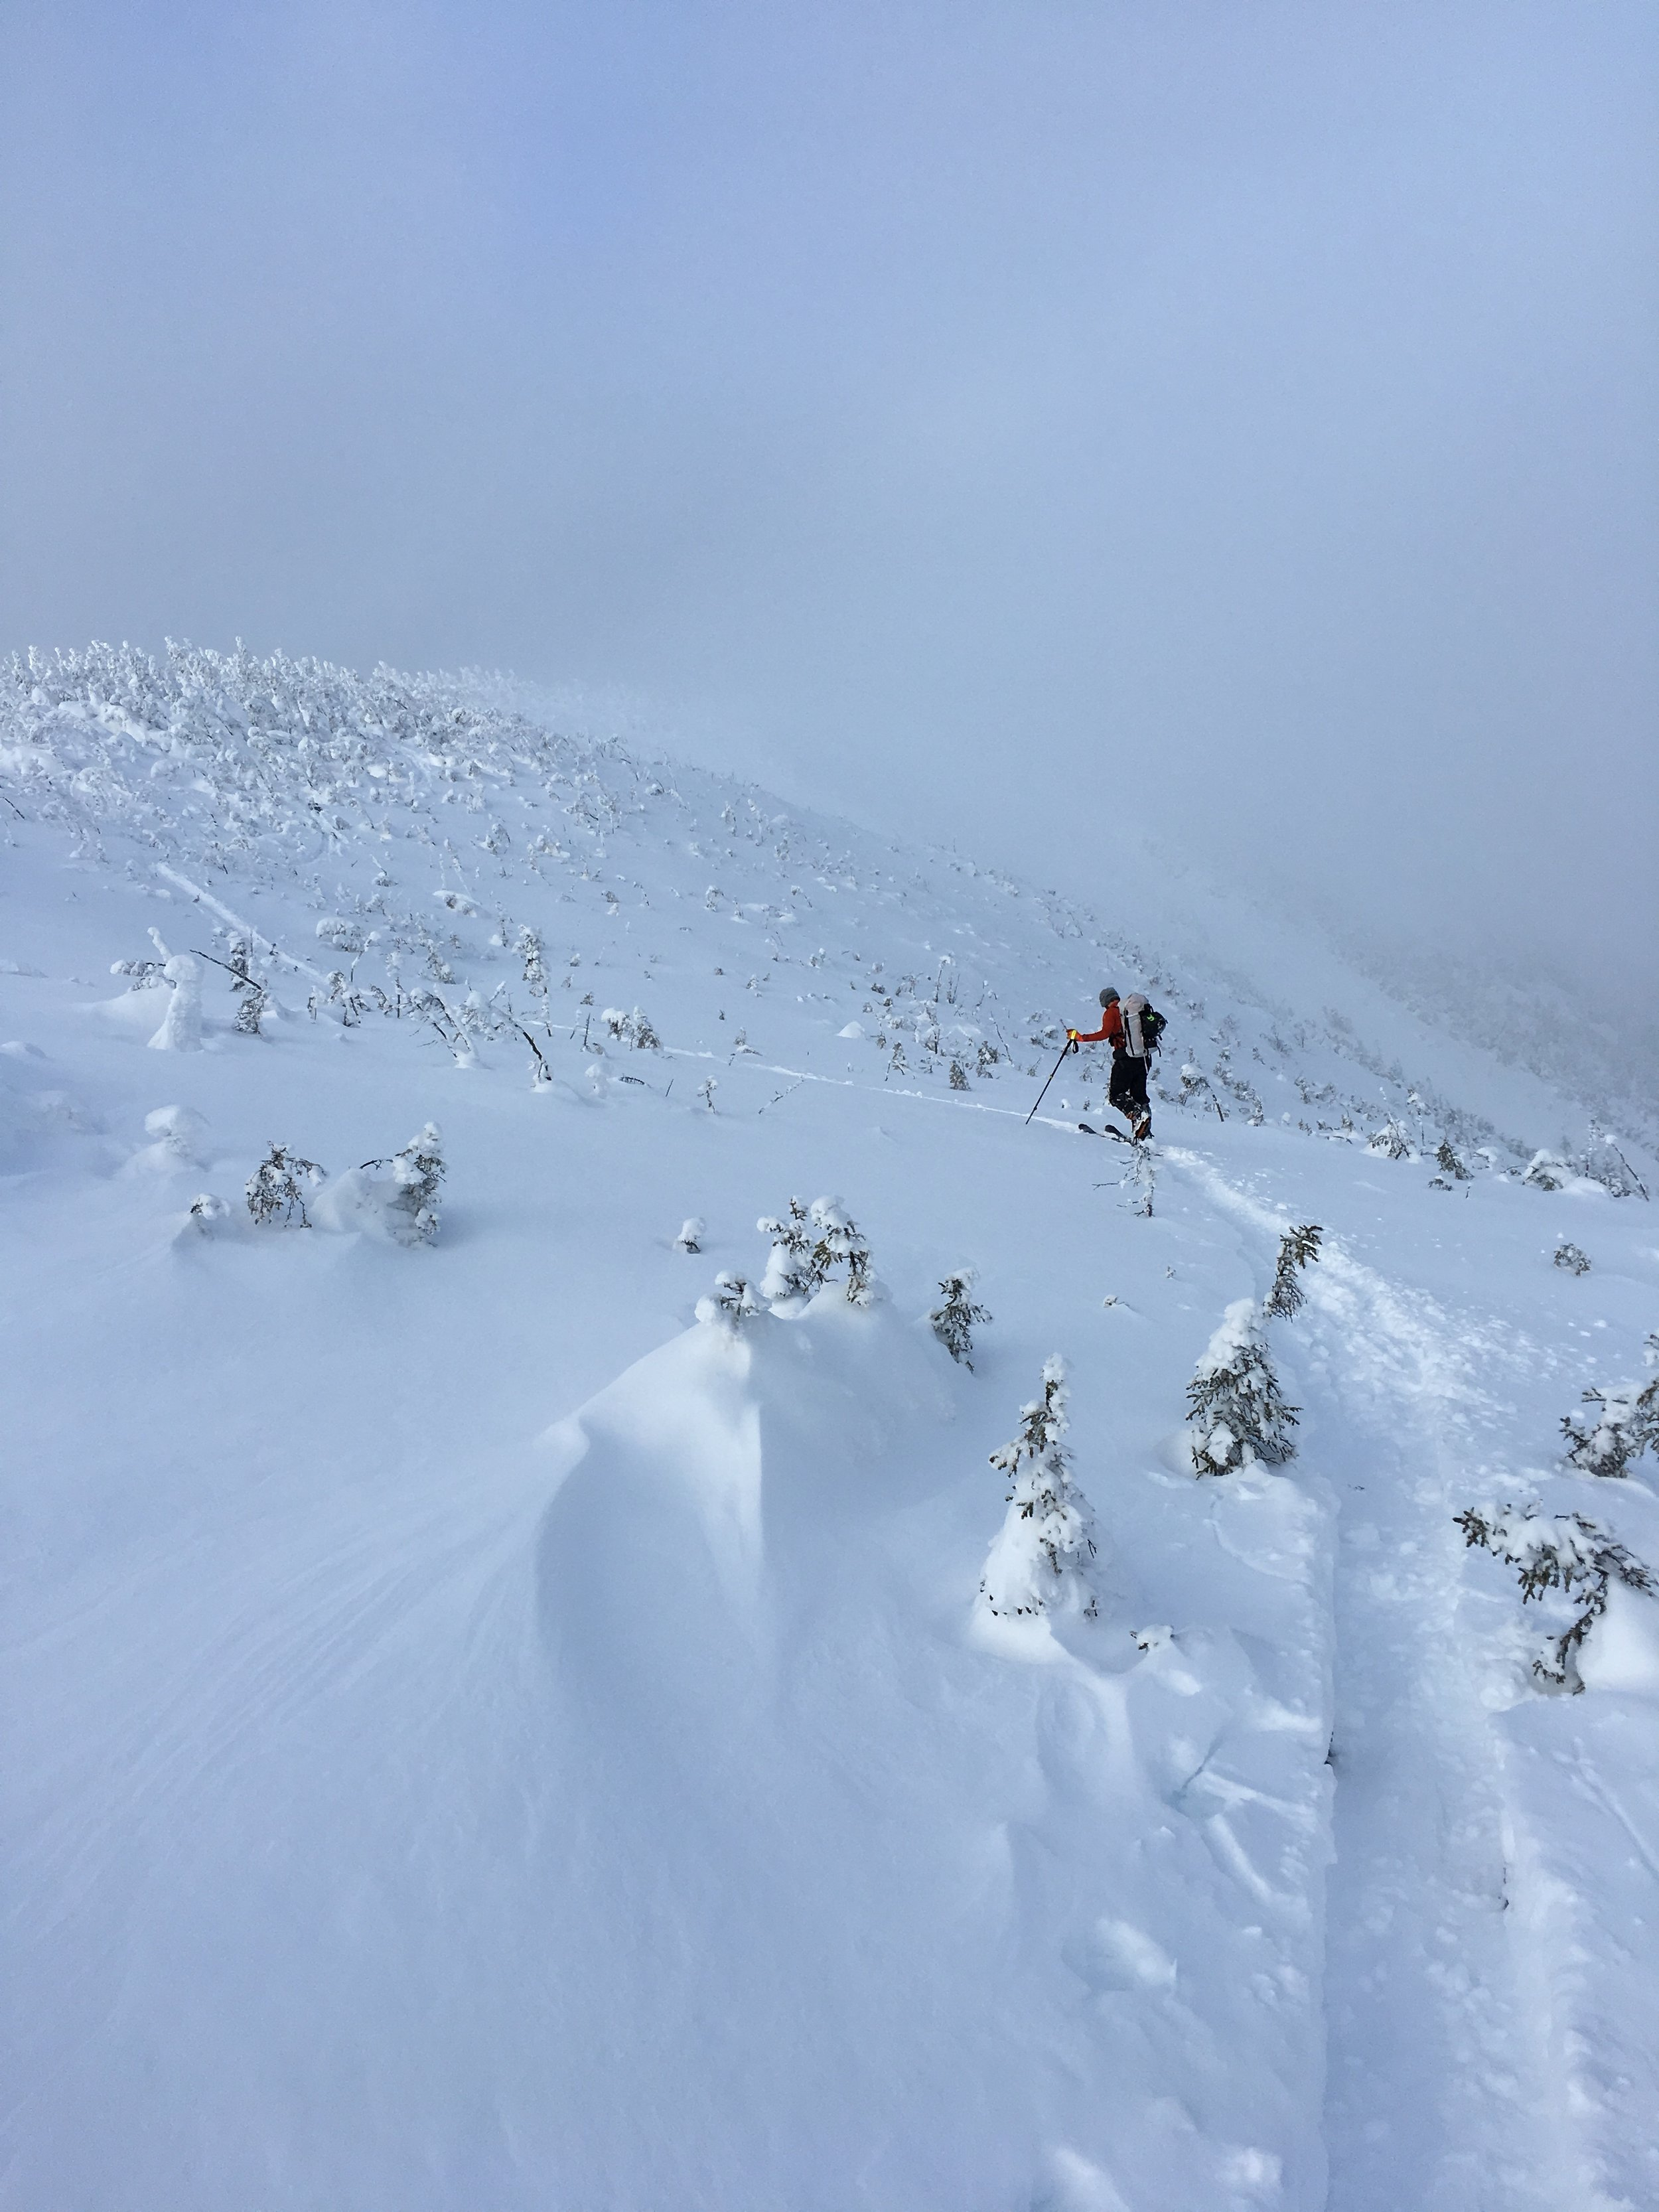 Traversing the ridge line and picking our ski line!